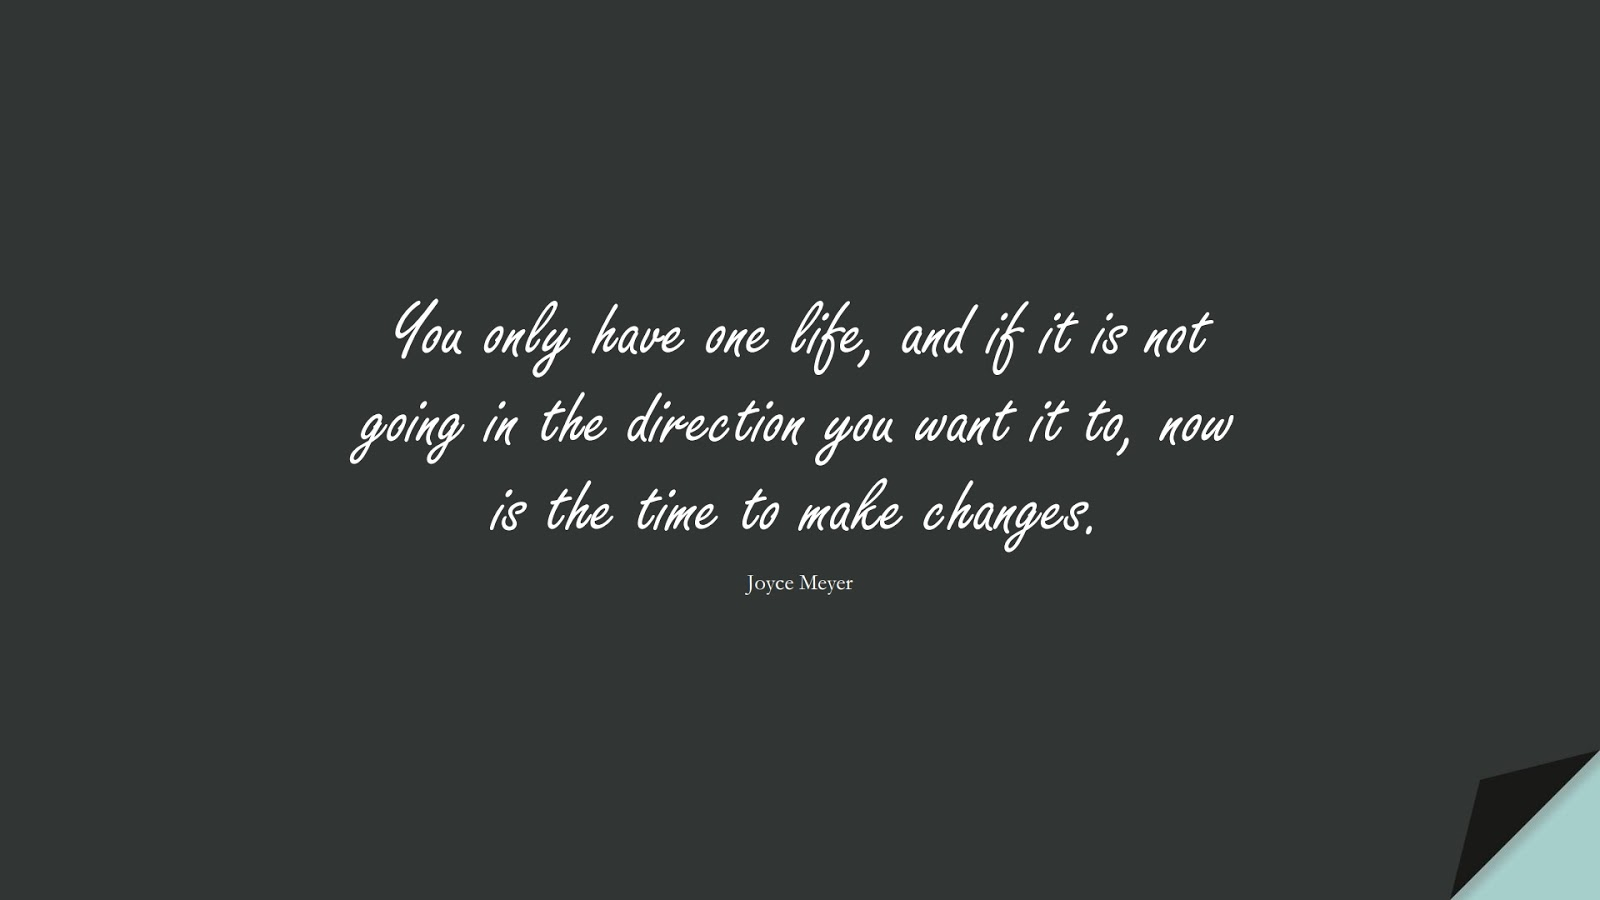 You only have one life, and if it is not going in the direction you want it to, now is the time to make changes. (Joyce Meyer);  #InspirationalQuotes